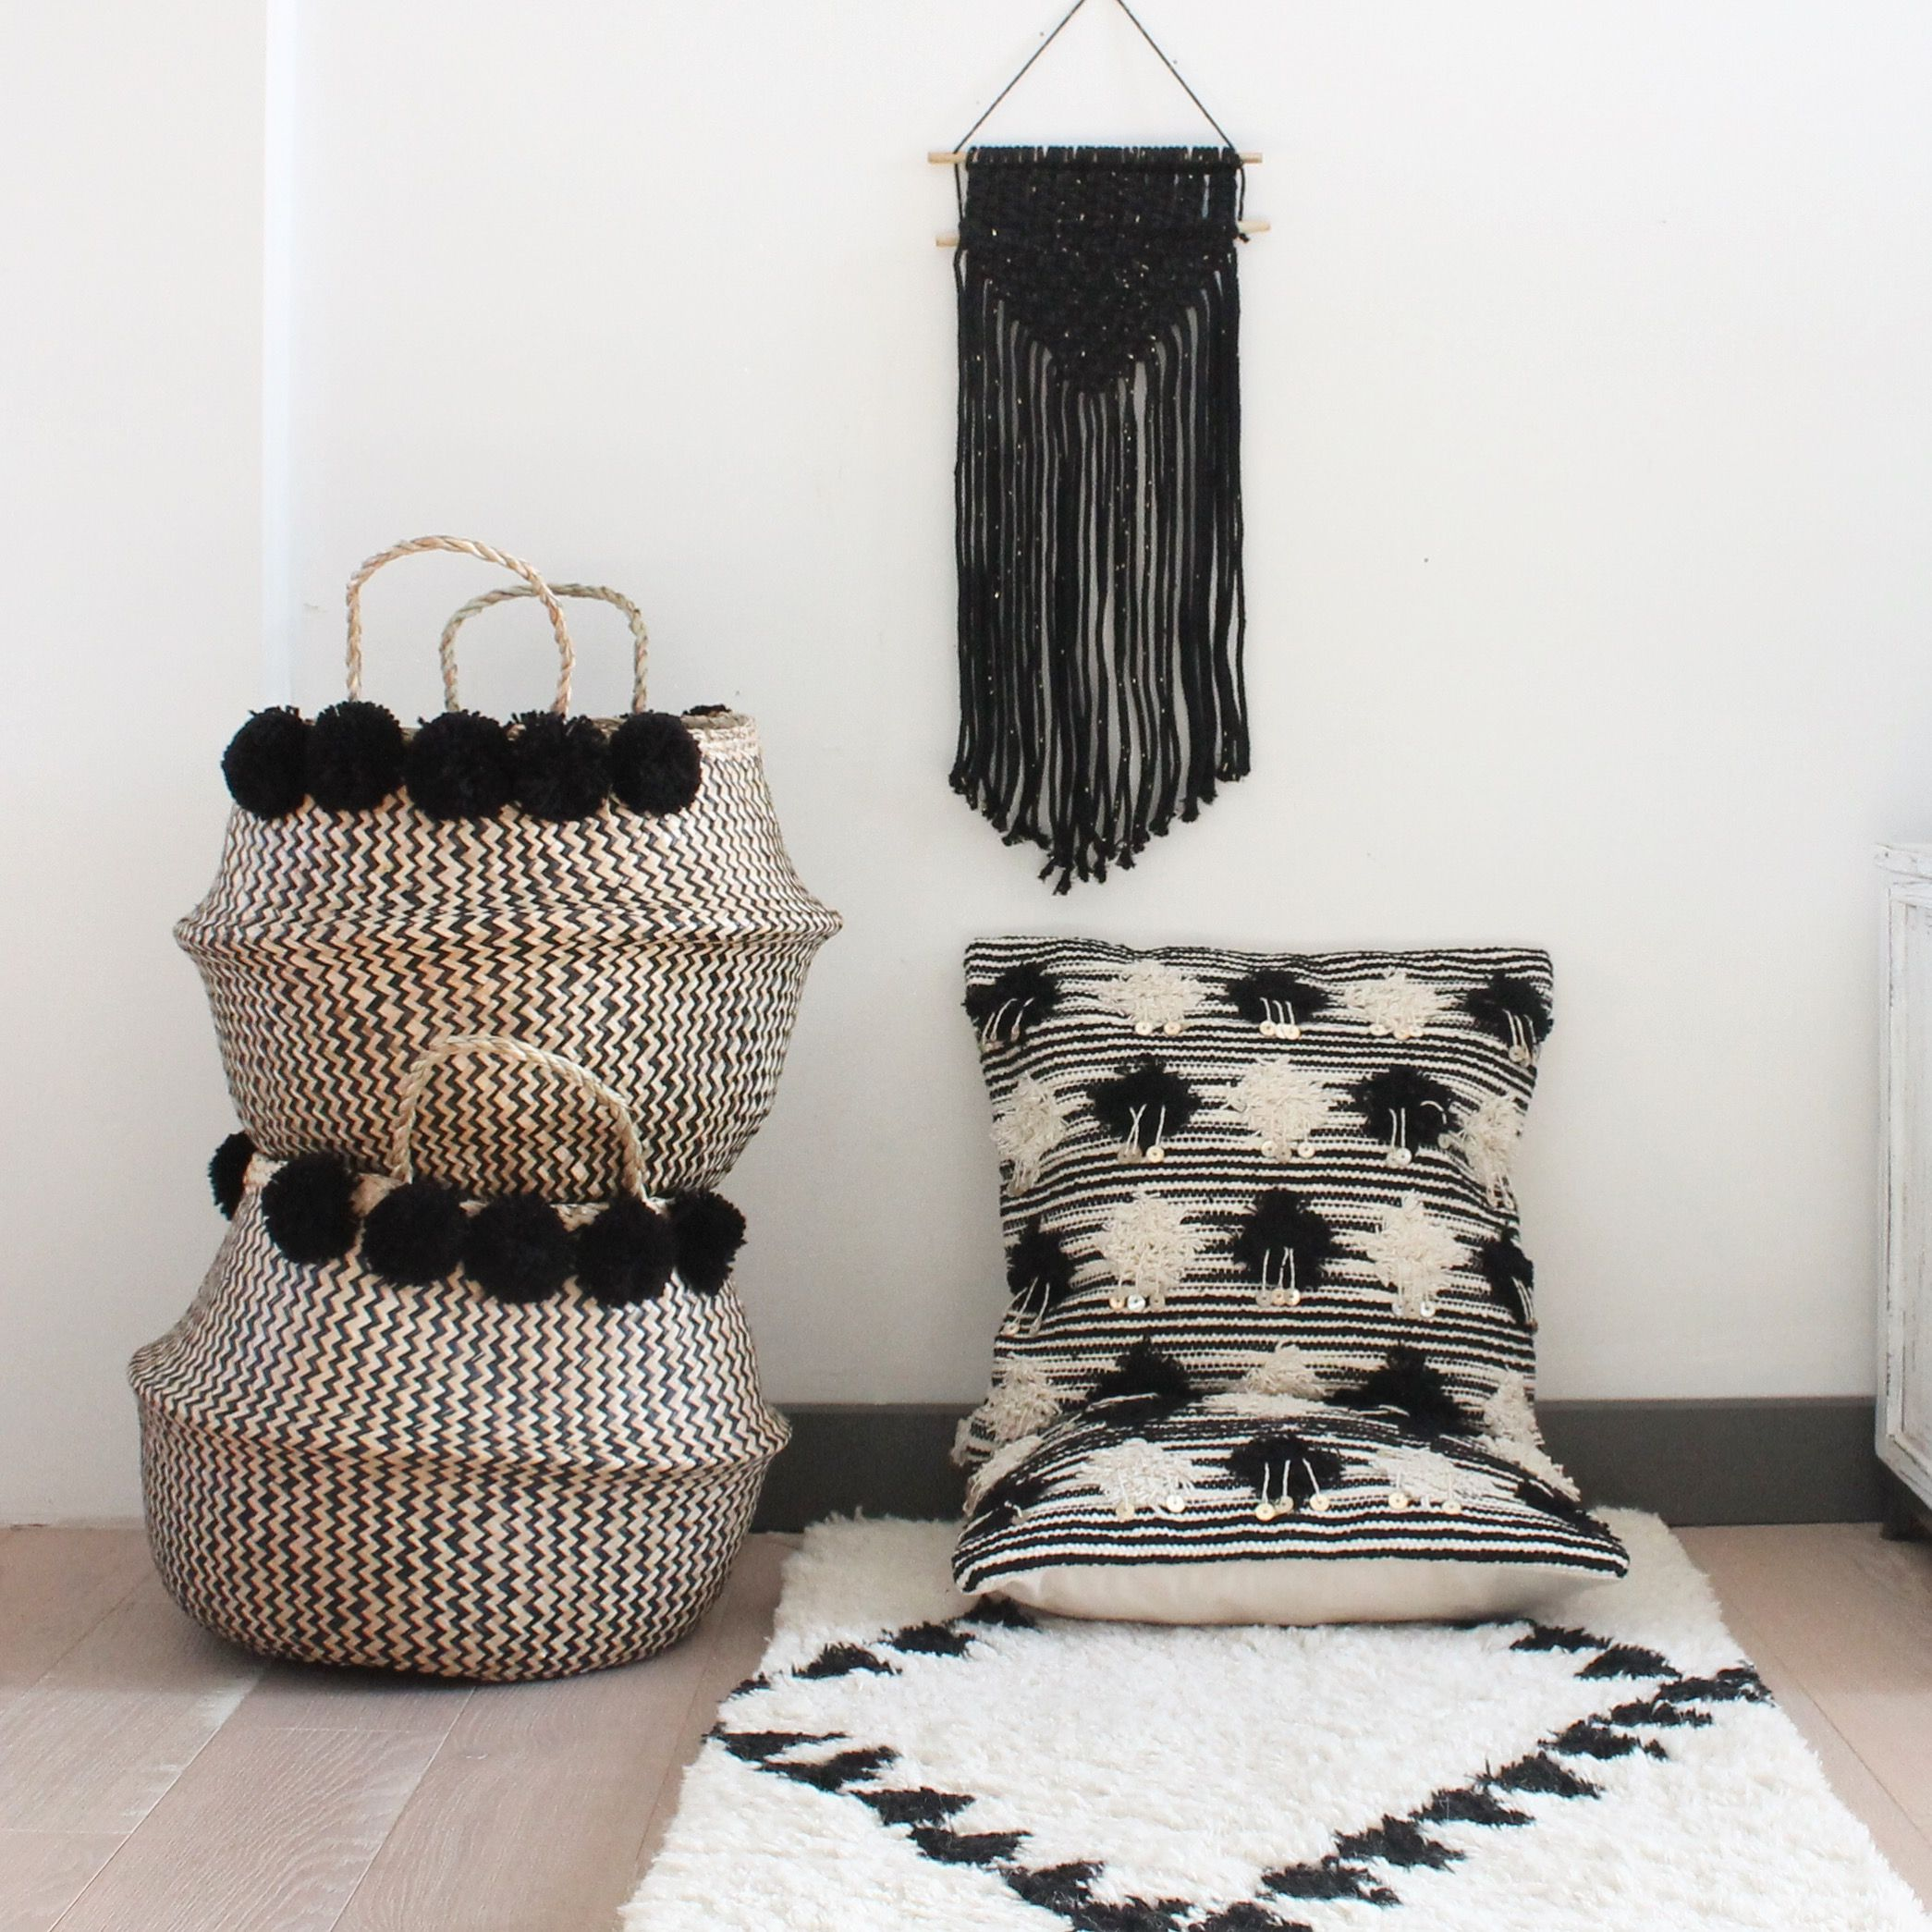 panier boule pompons et coussins berb re madam stoltz le joli shop b a s k e t s s t o r a. Black Bedroom Furniture Sets. Home Design Ideas